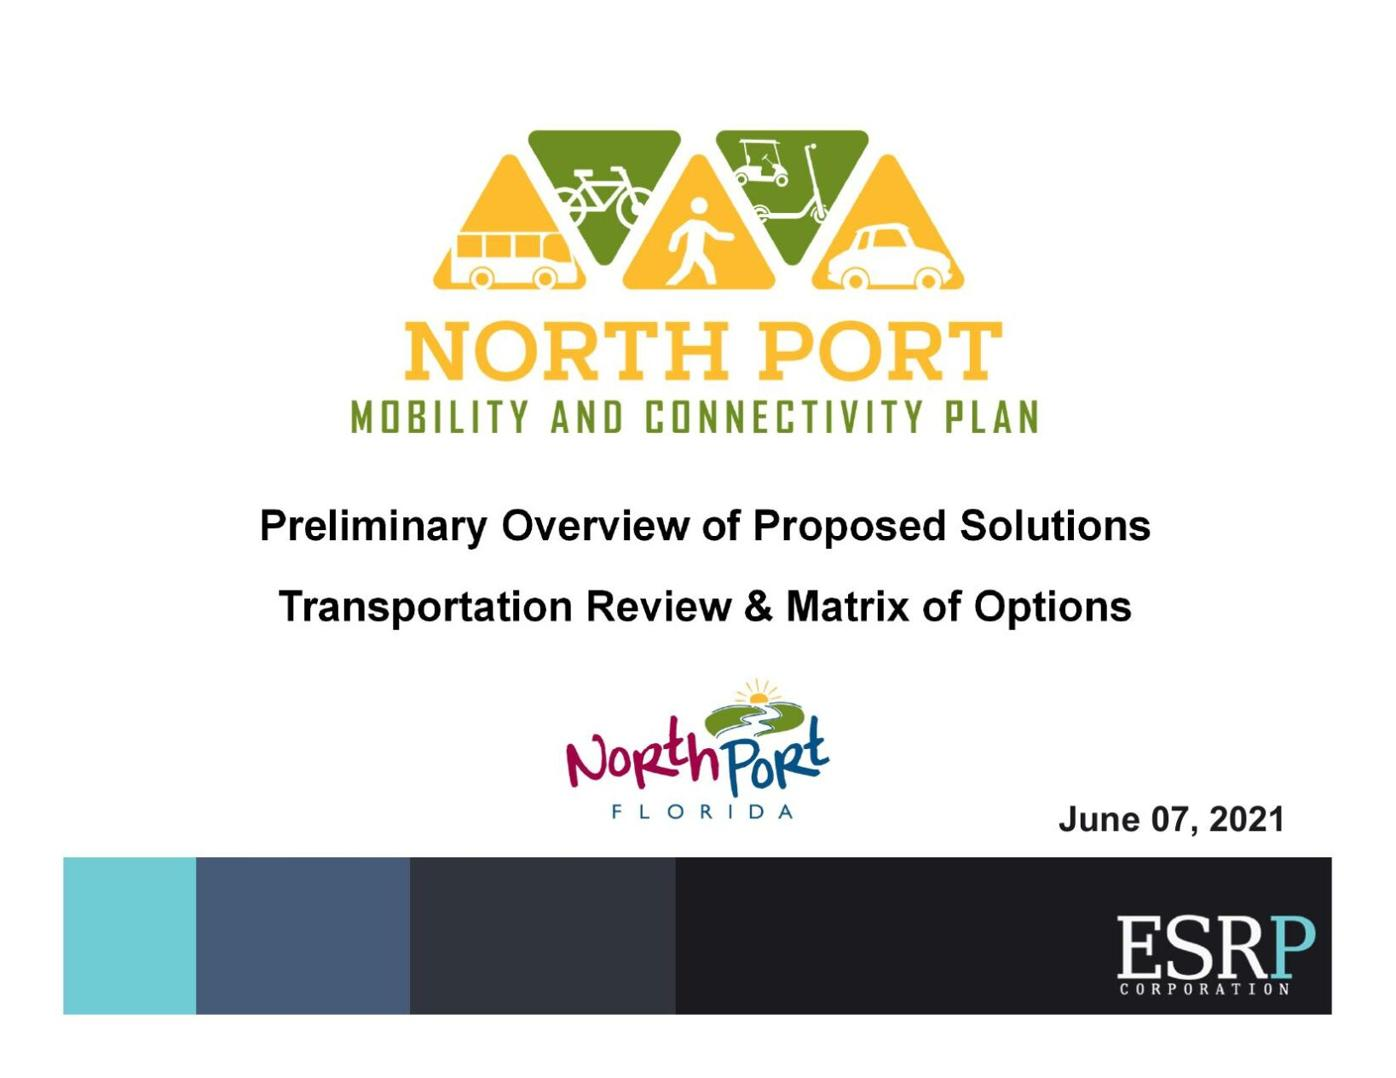 North Port mobility report 2021